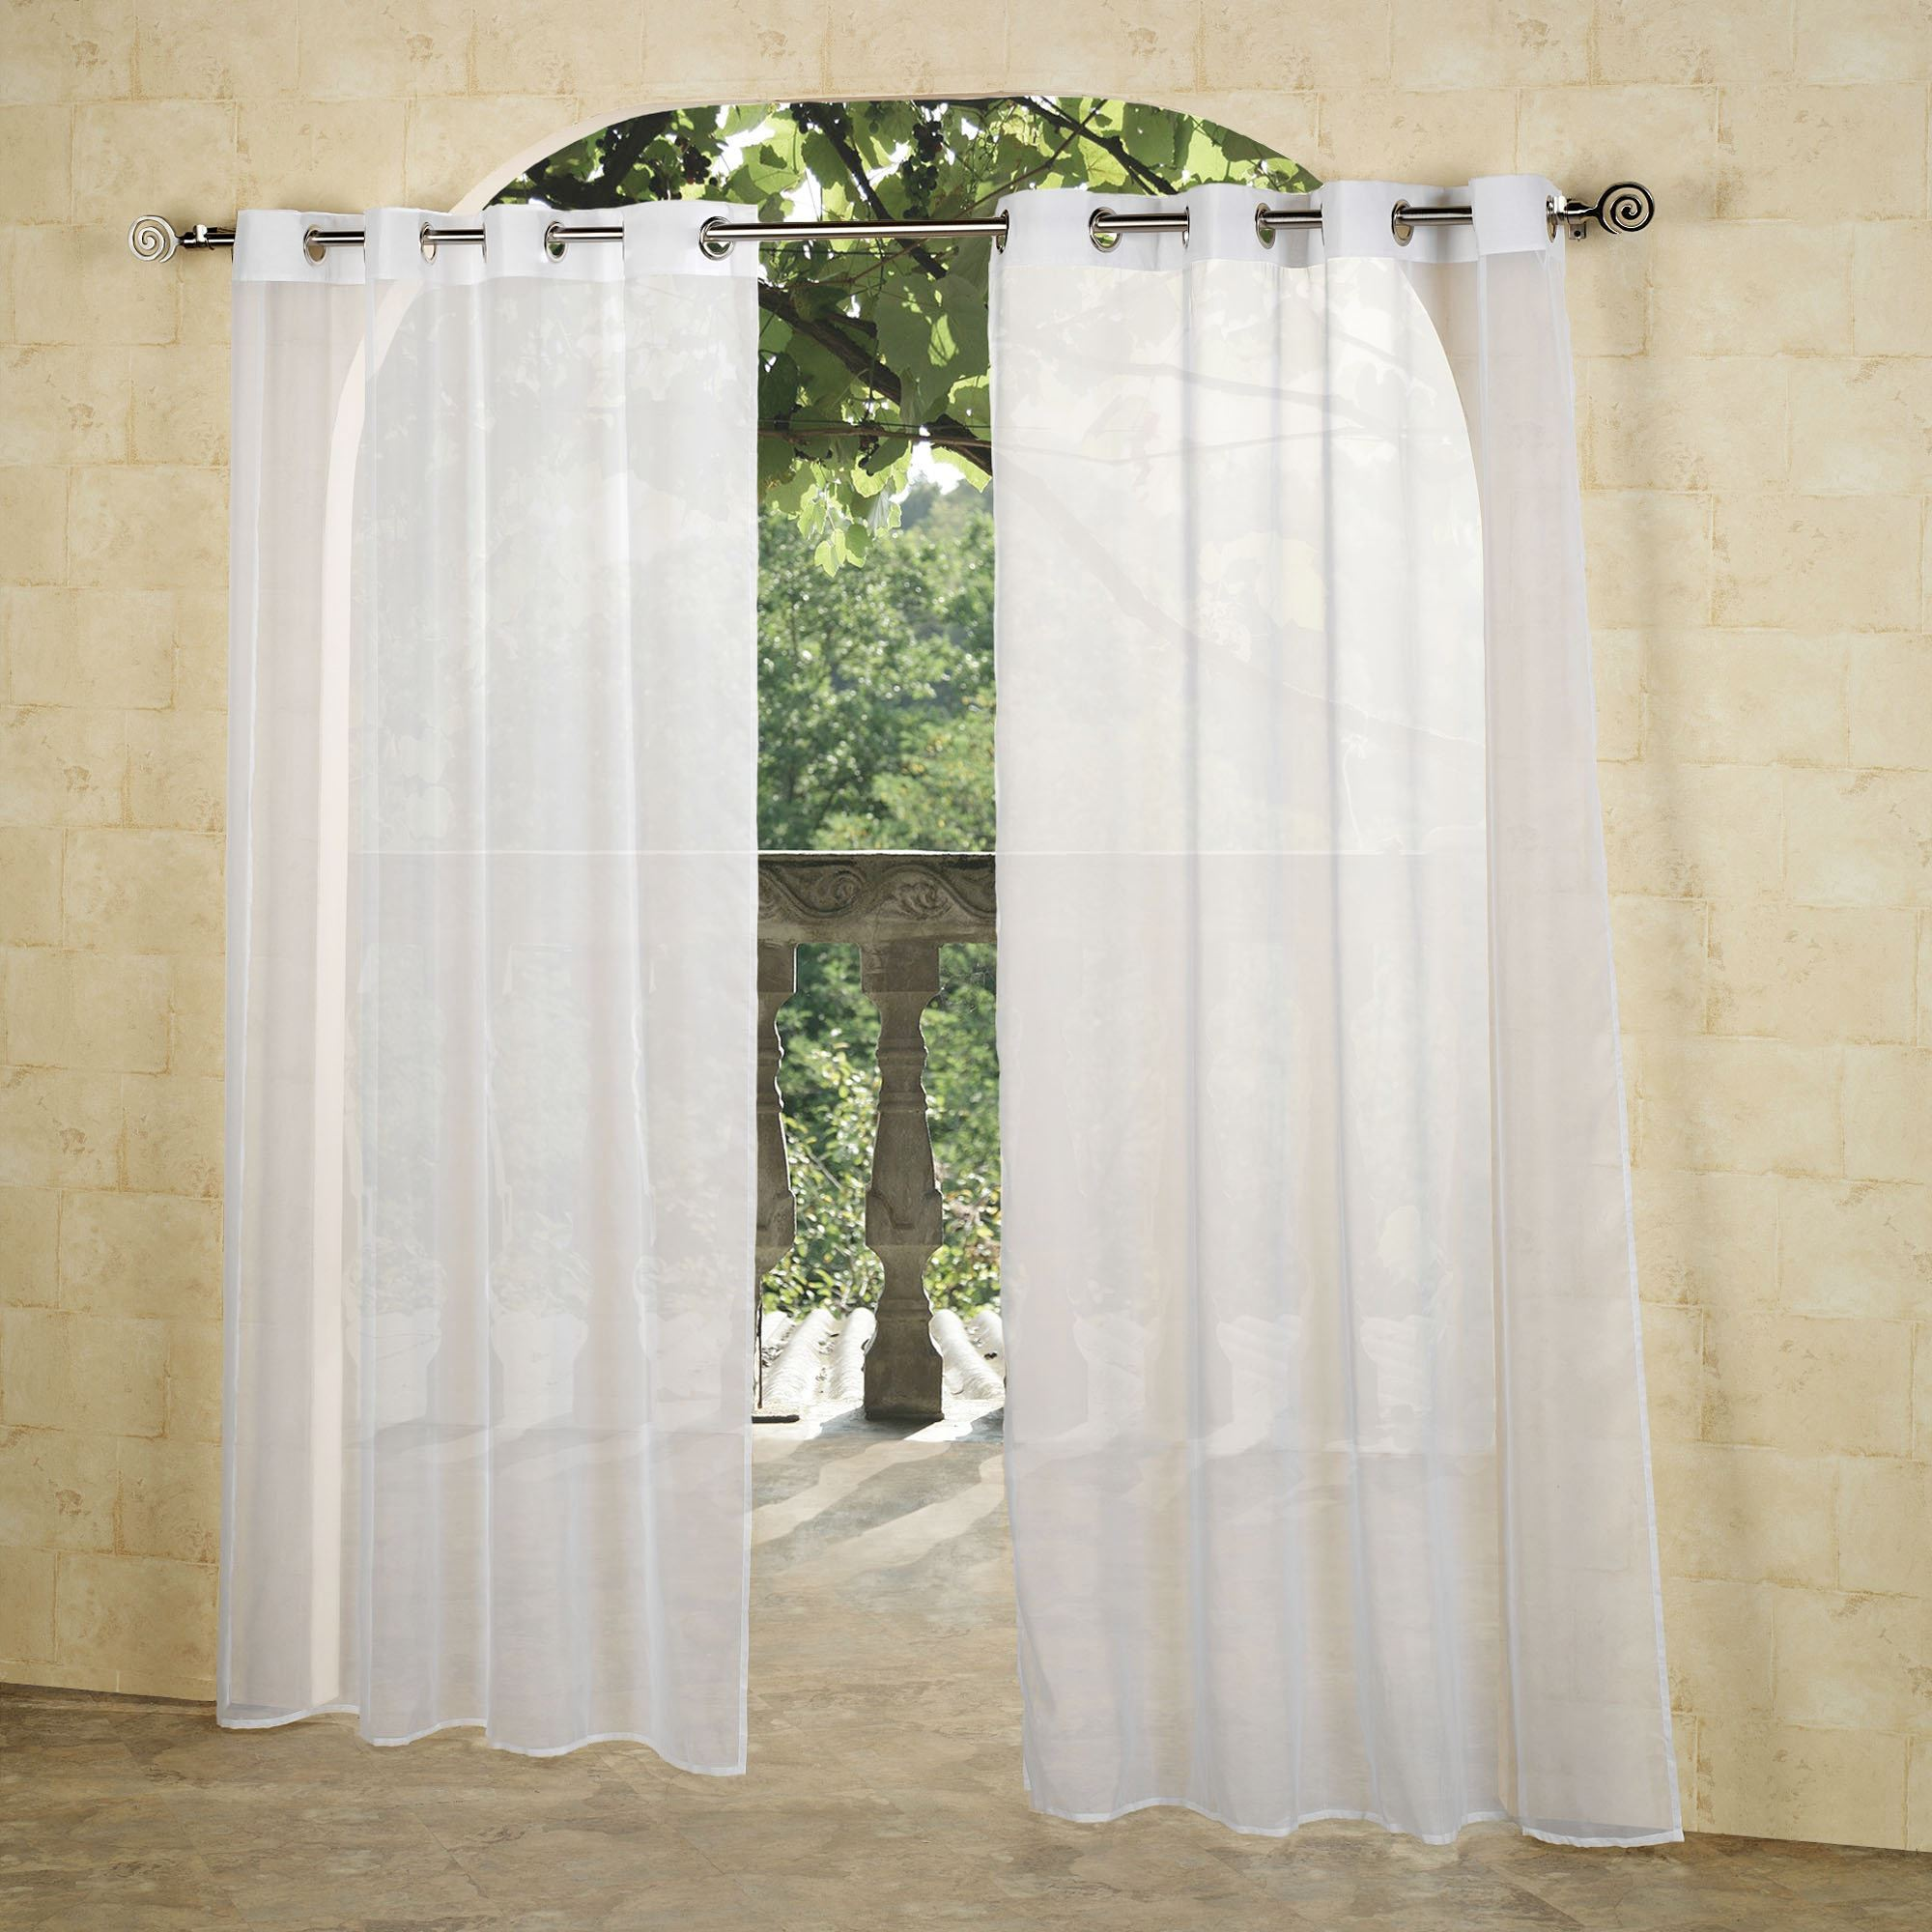 Escape outdoor sheer grommet panels for Grommet curtains with sheers